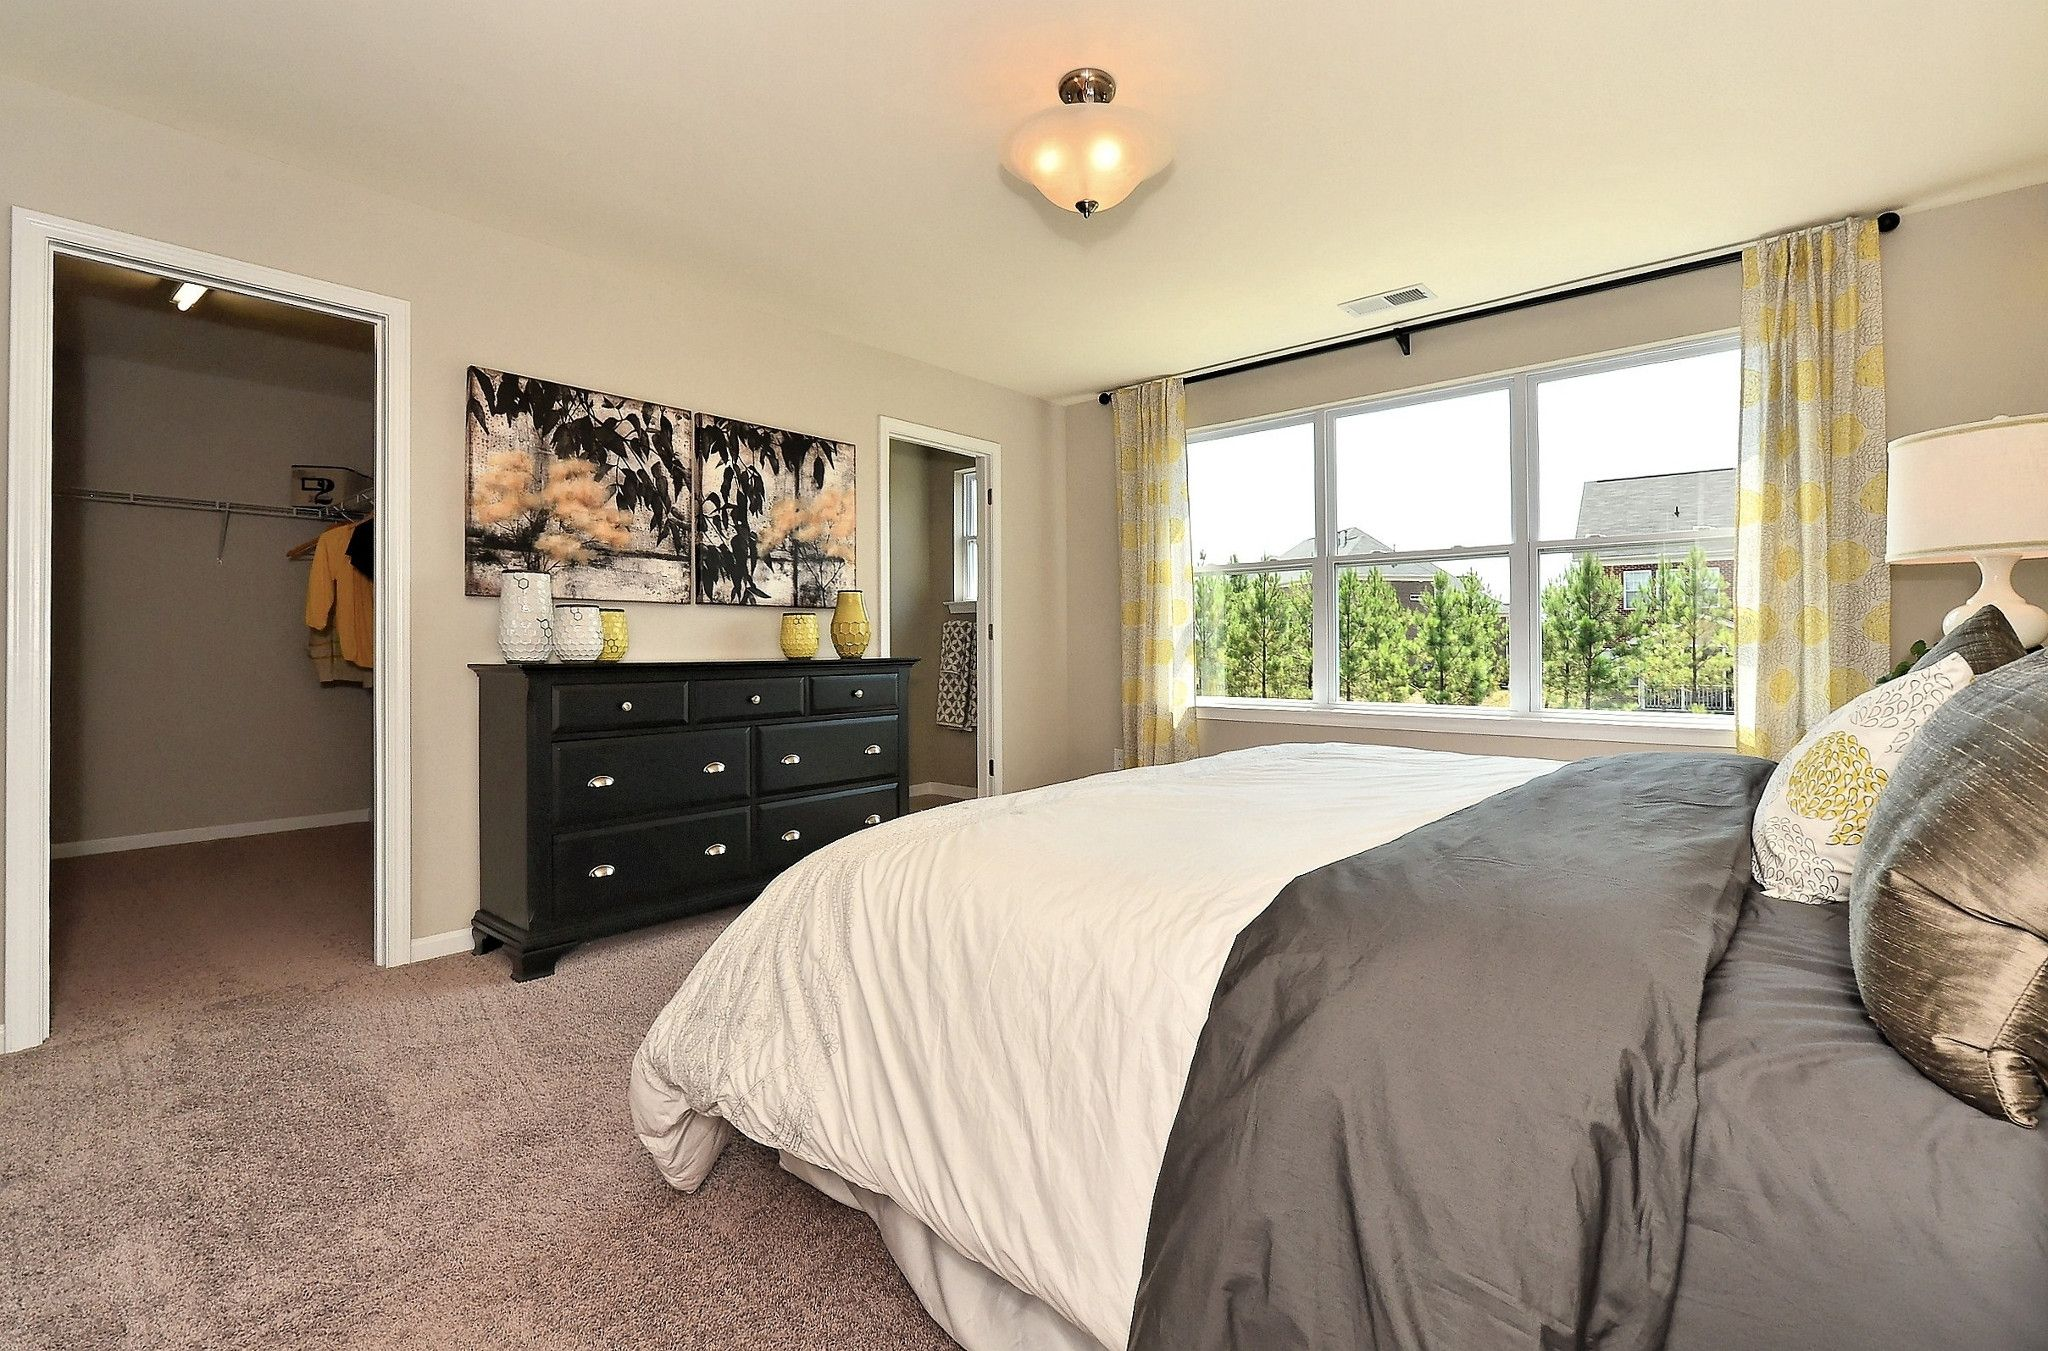 Bedroom featured in the Tensley By Shea Homes in Charlotte, NC